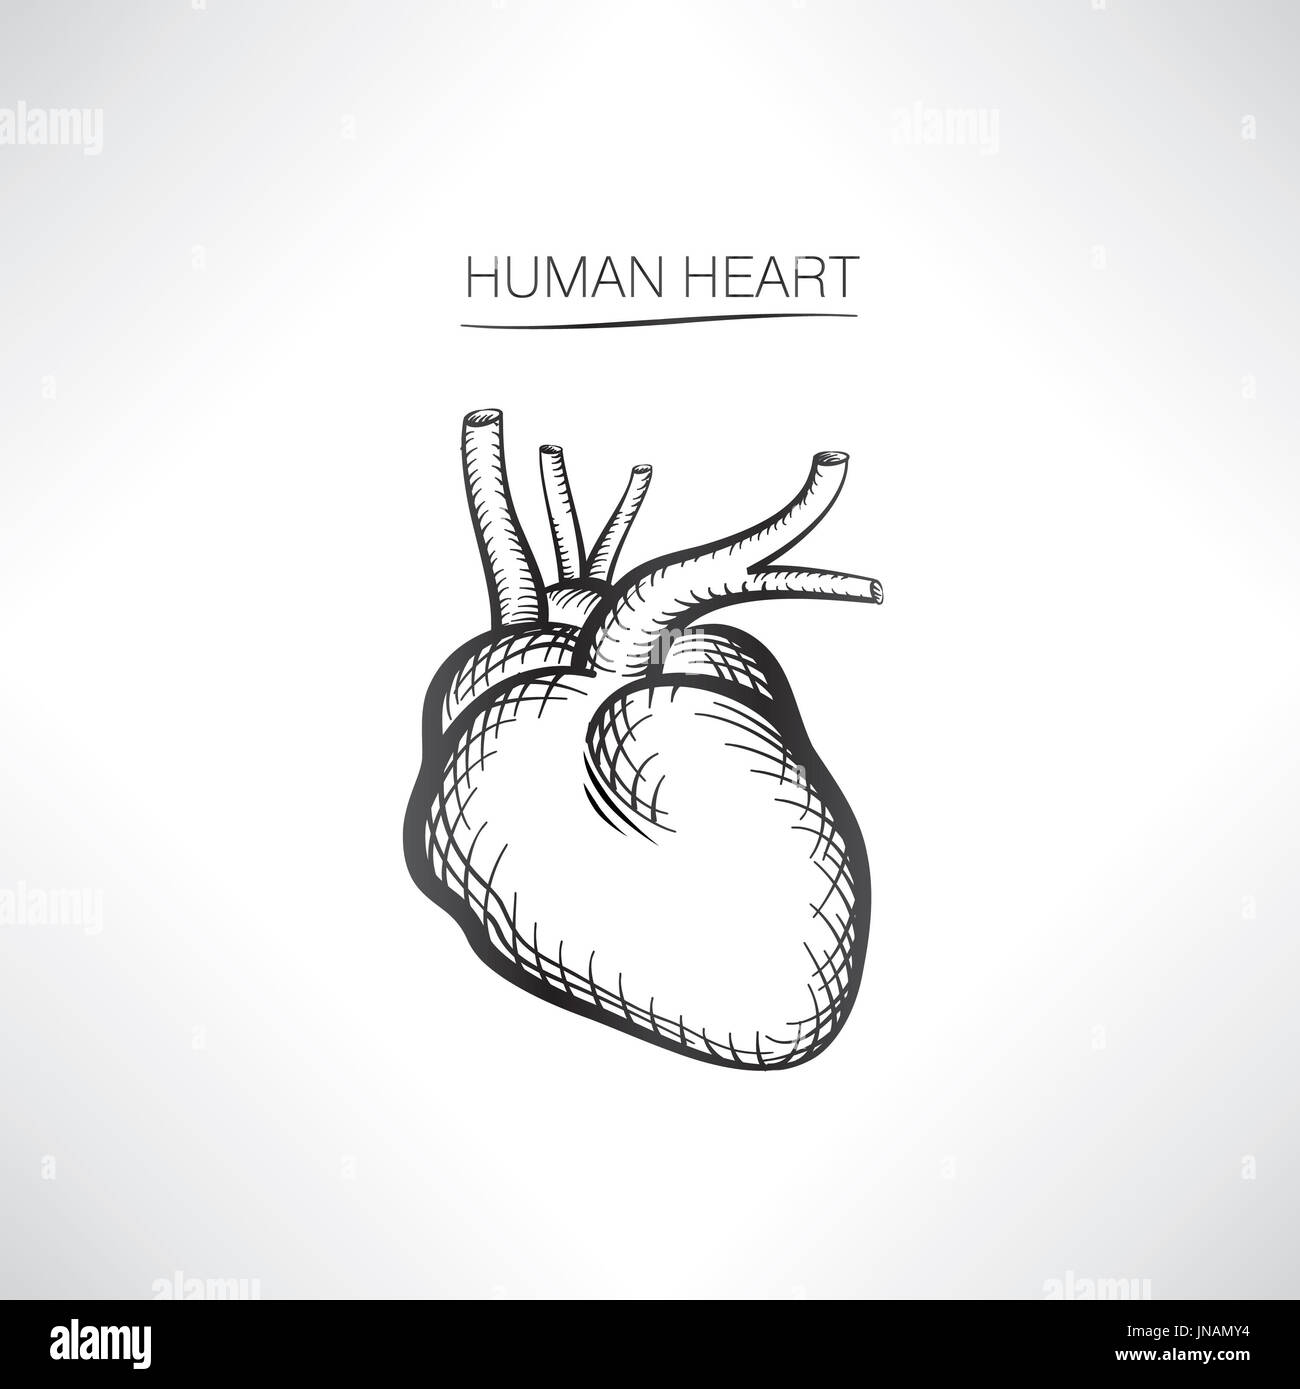 Human heart isolated internal organ icons sketch stock photo human heart isolated internal organ icons sketch ccuart Gallery